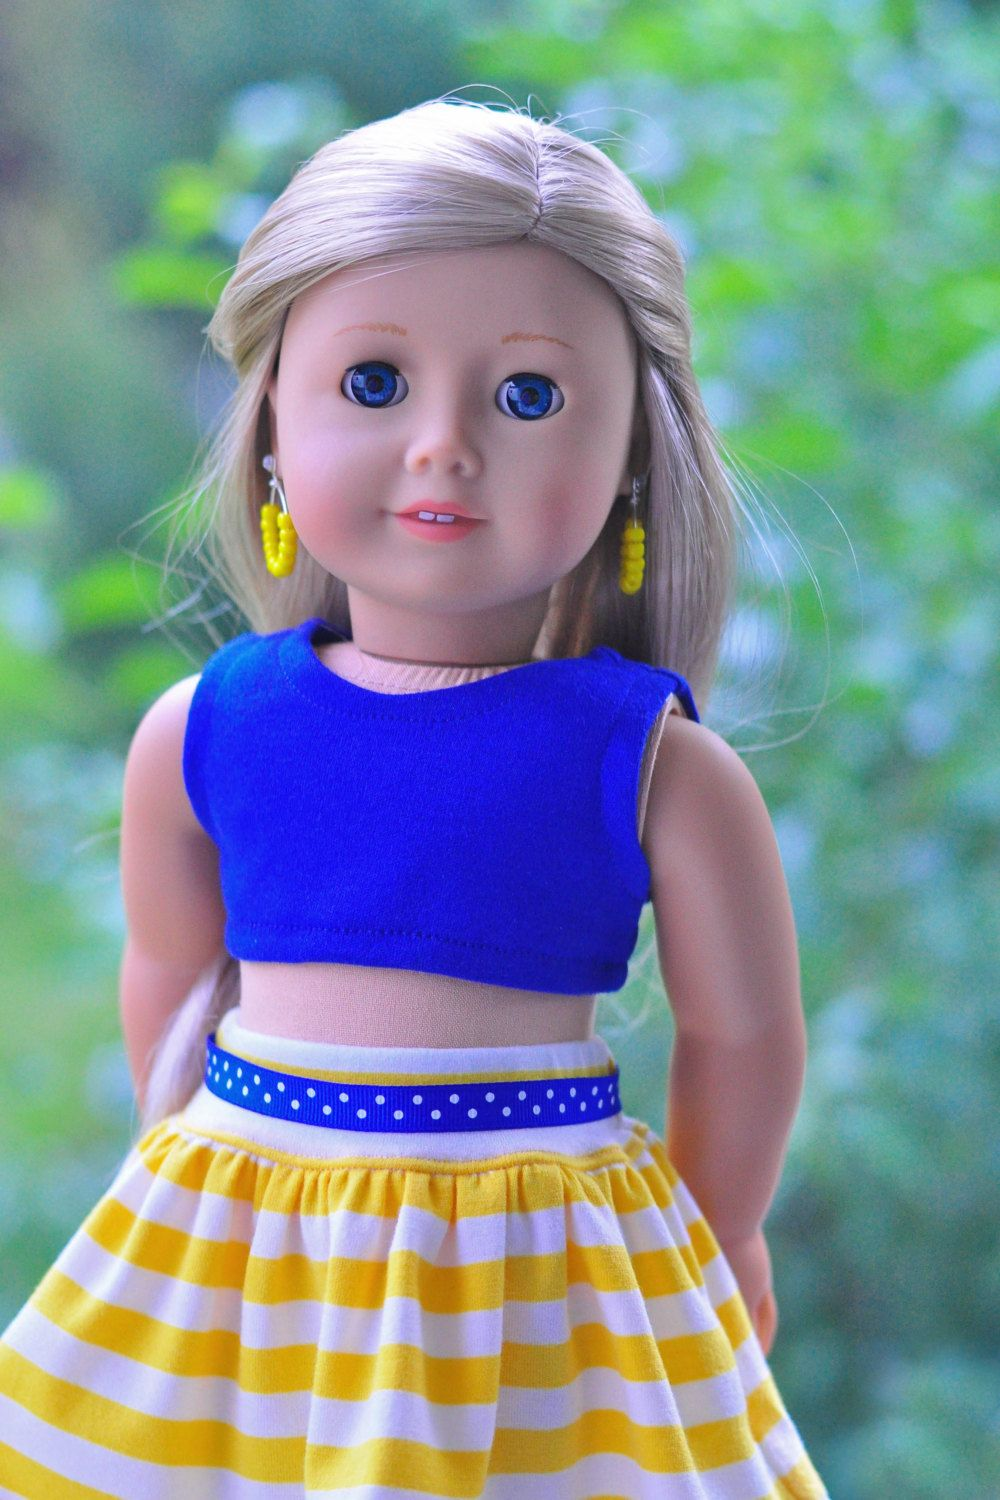 18 inch doll clothes, Girl doll clothes, AG doll clothes, blue crop top, yellow/white striped skirt, ribbon belt and earrings #girldollclothes